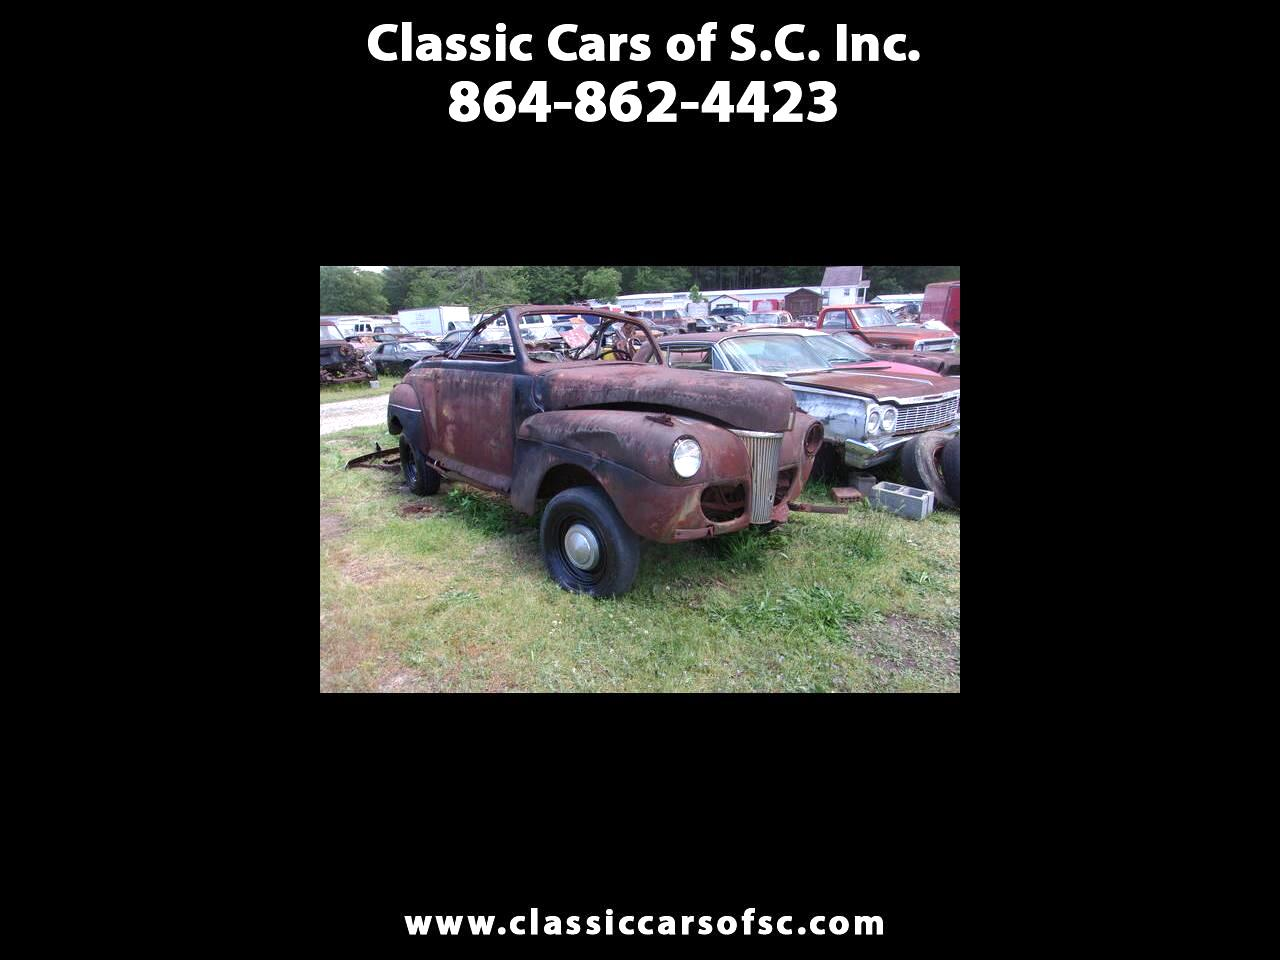 Used 1941 Ford Convertible For Sale In Gray Court Sc 29645 Classic Cars Of S C Inc